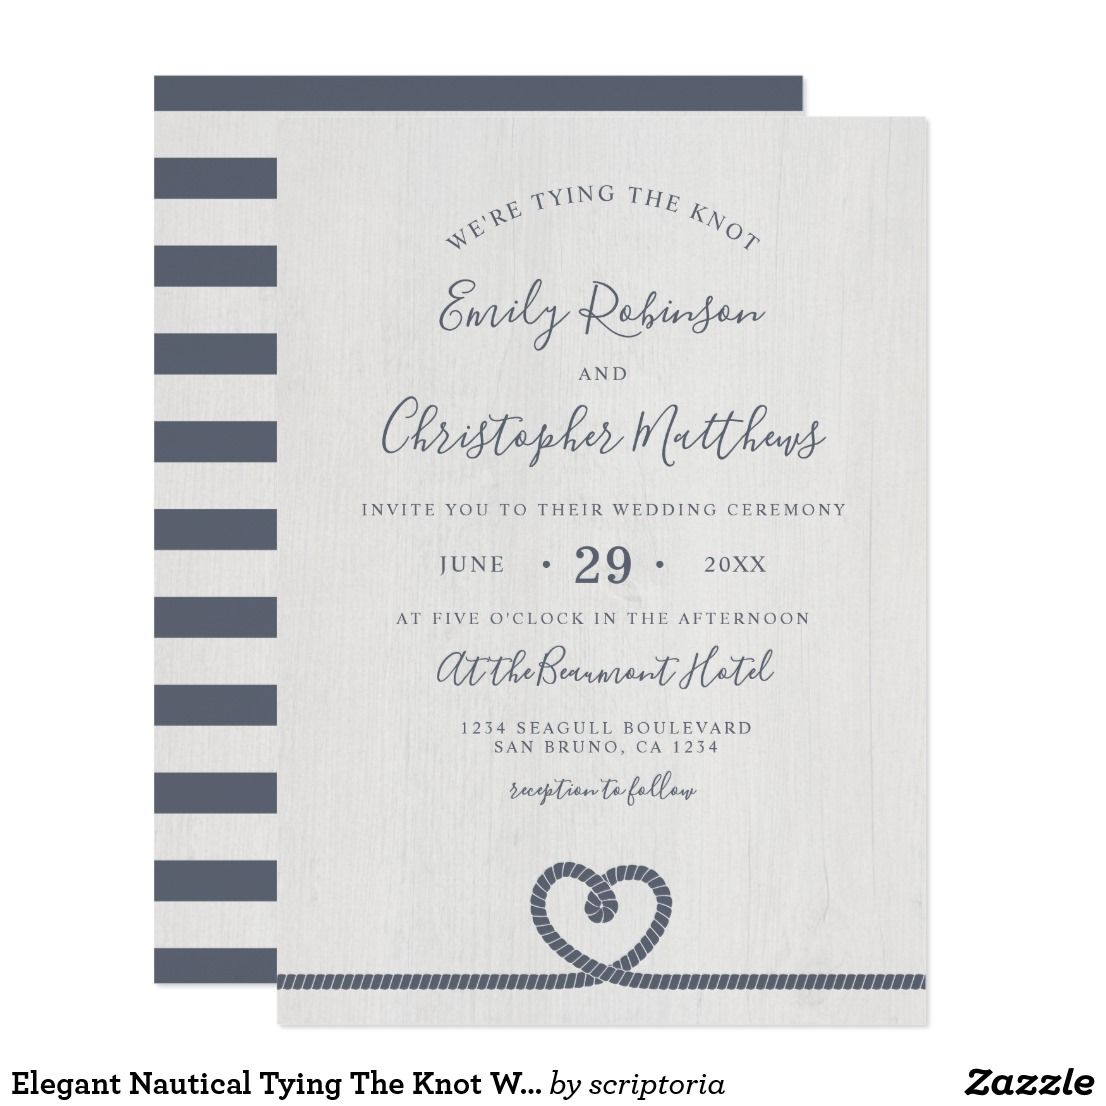 Elegant Nautical Tying The Knot Wedding Invitation Zazzle Com